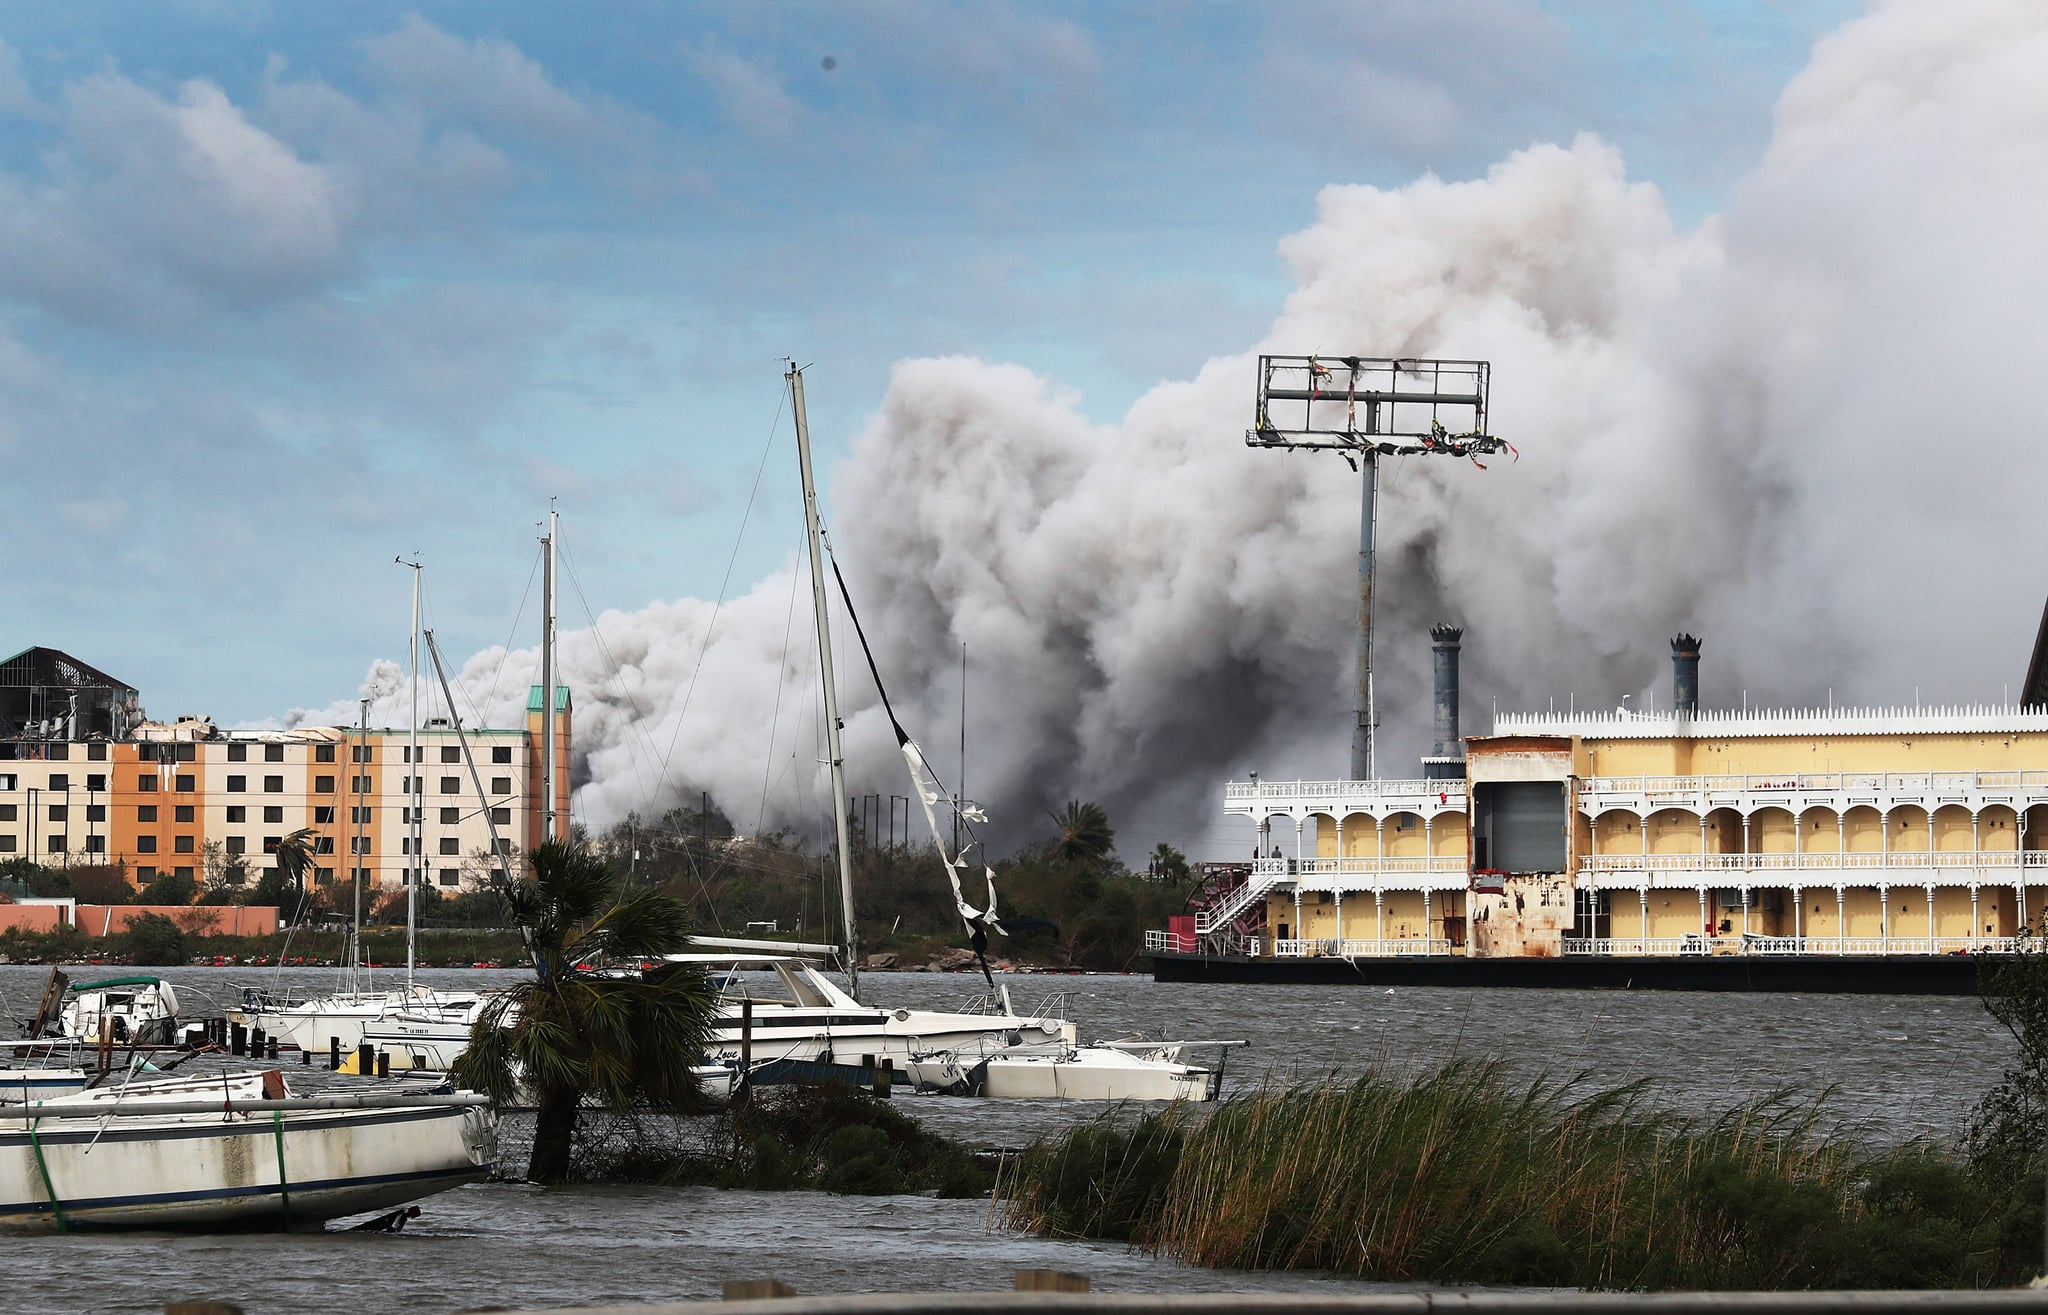 LAKE CHARLES, LOUISIANA - AUGUST 27: Smoke is seen rising from what is reported to be a chemical plant fire after Hurricane Laura passed through the area on August 27, 2020 in Lake Charles, Louisiana . The hurricane hit with powerful winds causing extensive damage to the city. (Photo by Joe Raedle/Getty Images)